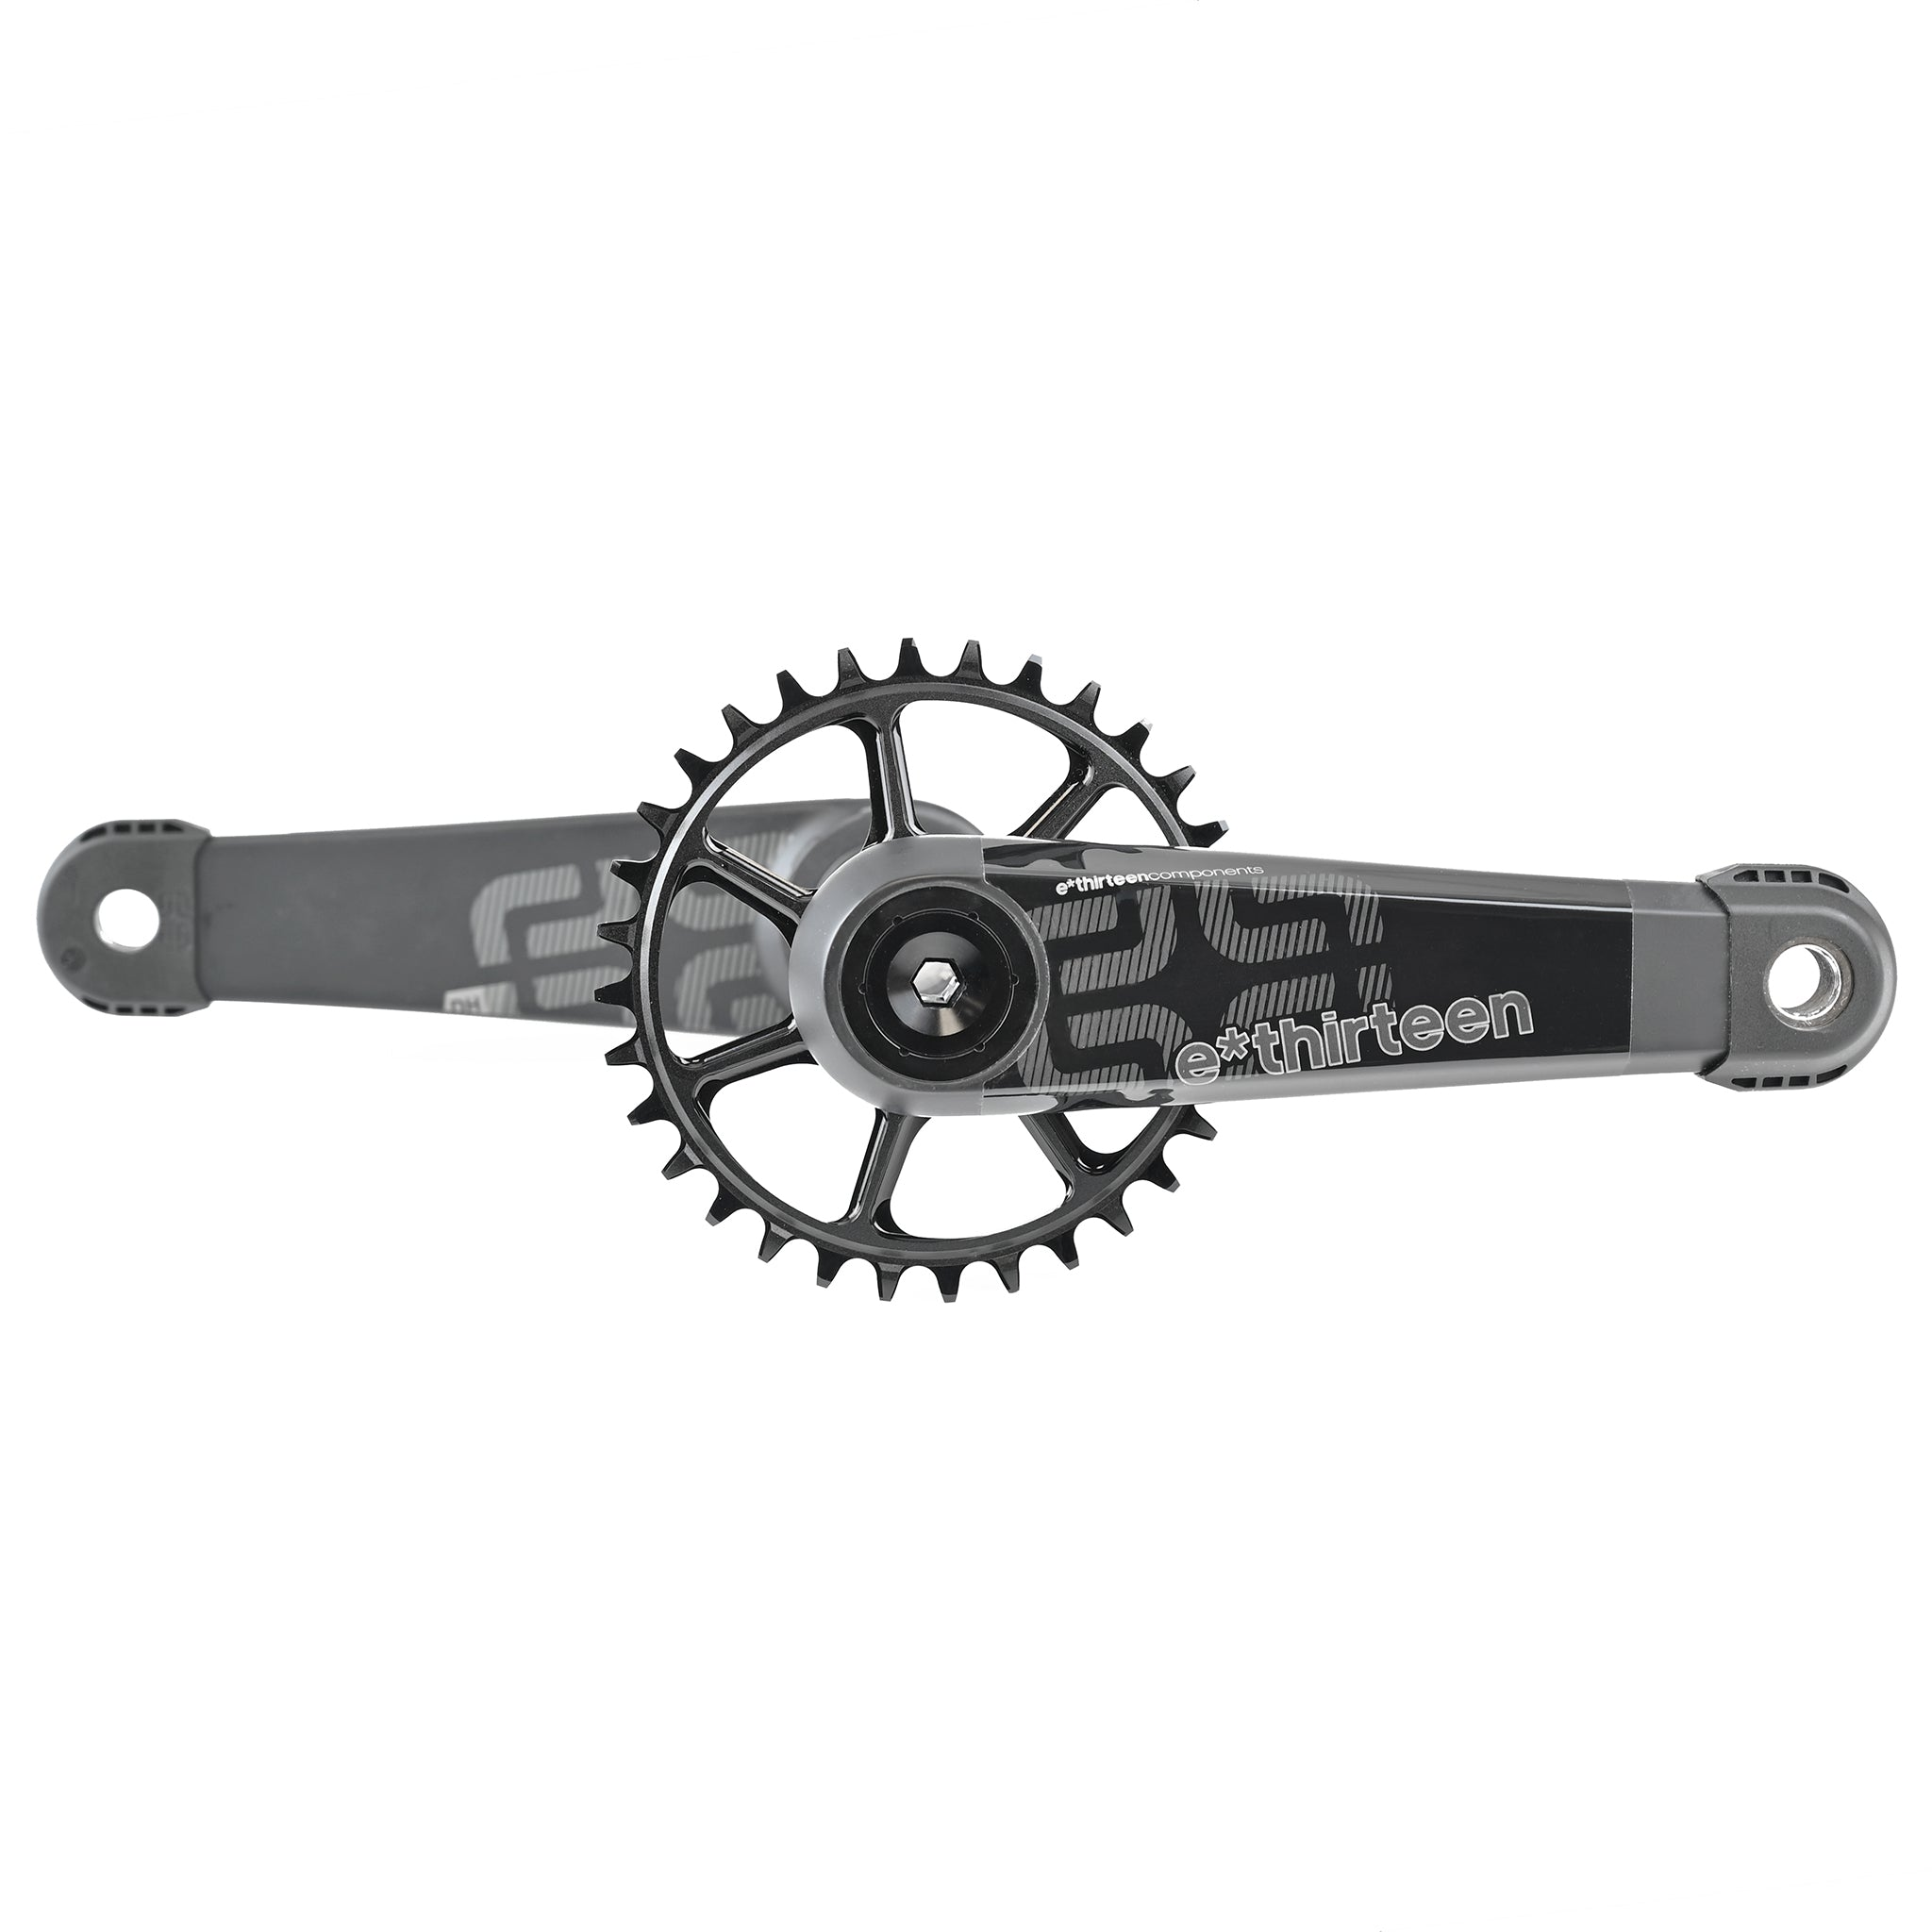 LG1 Race Carbon Cranks - Gen4